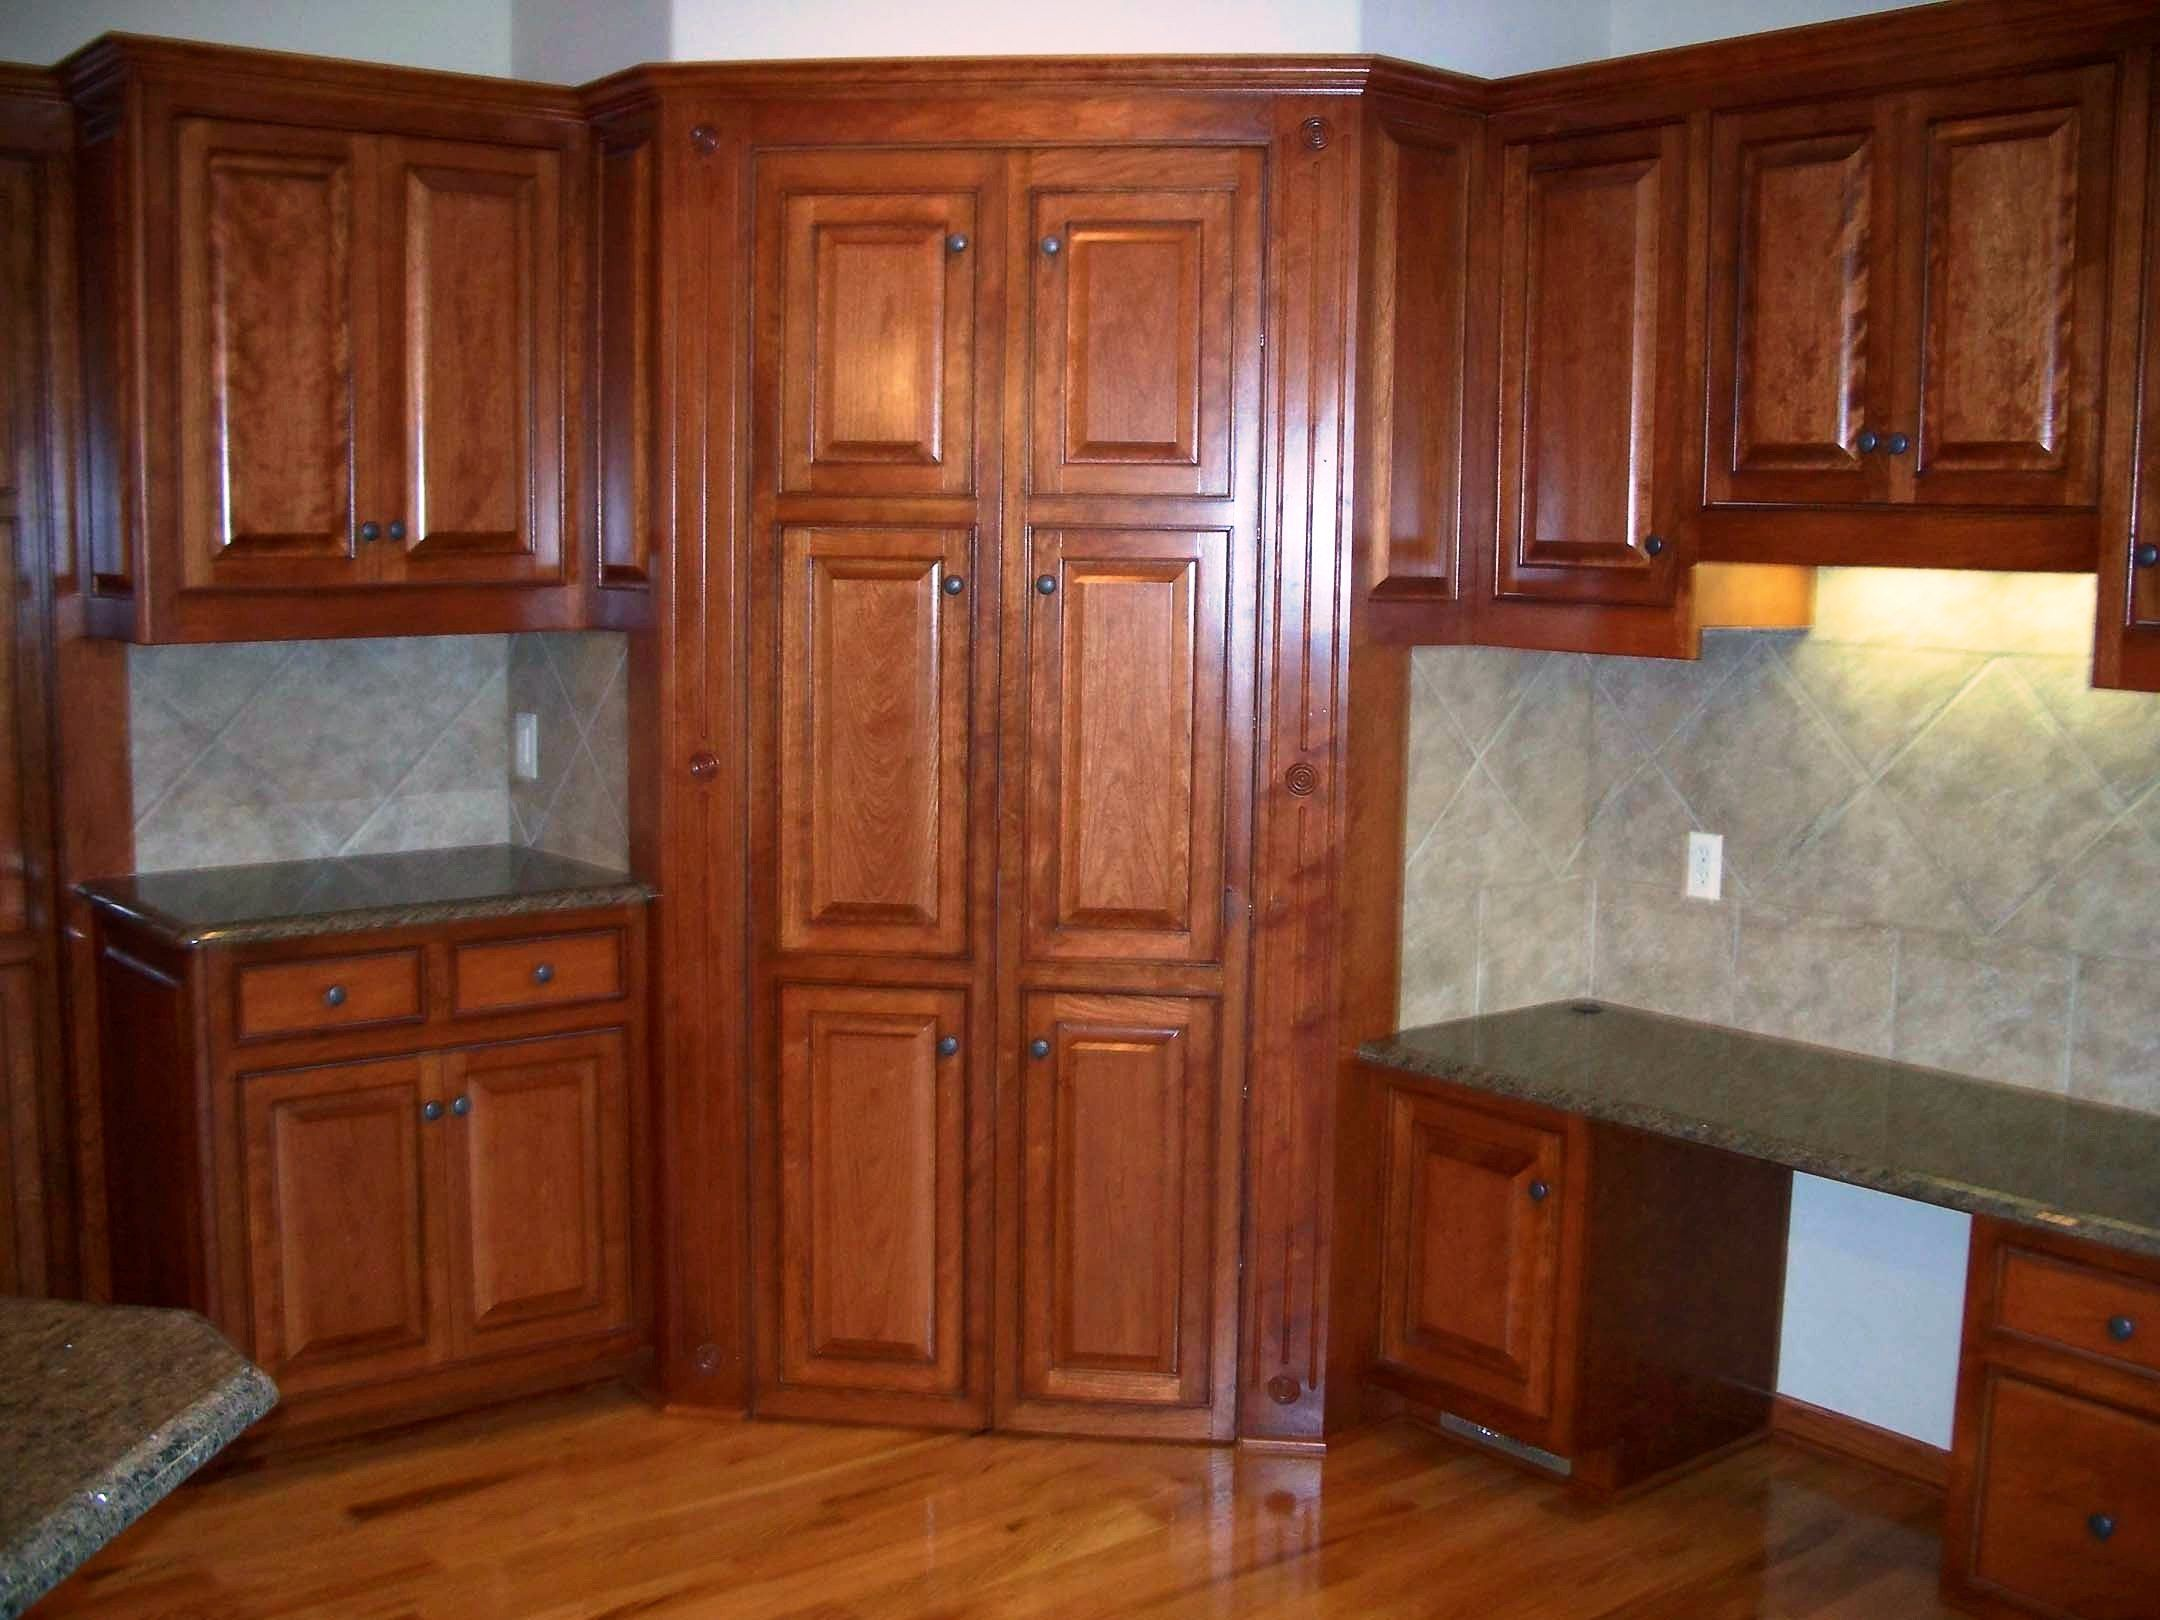 Kitchen cabinet hinges corner cabinets - Small Kitchen Remodels Tall Corner Cabinet Pantry